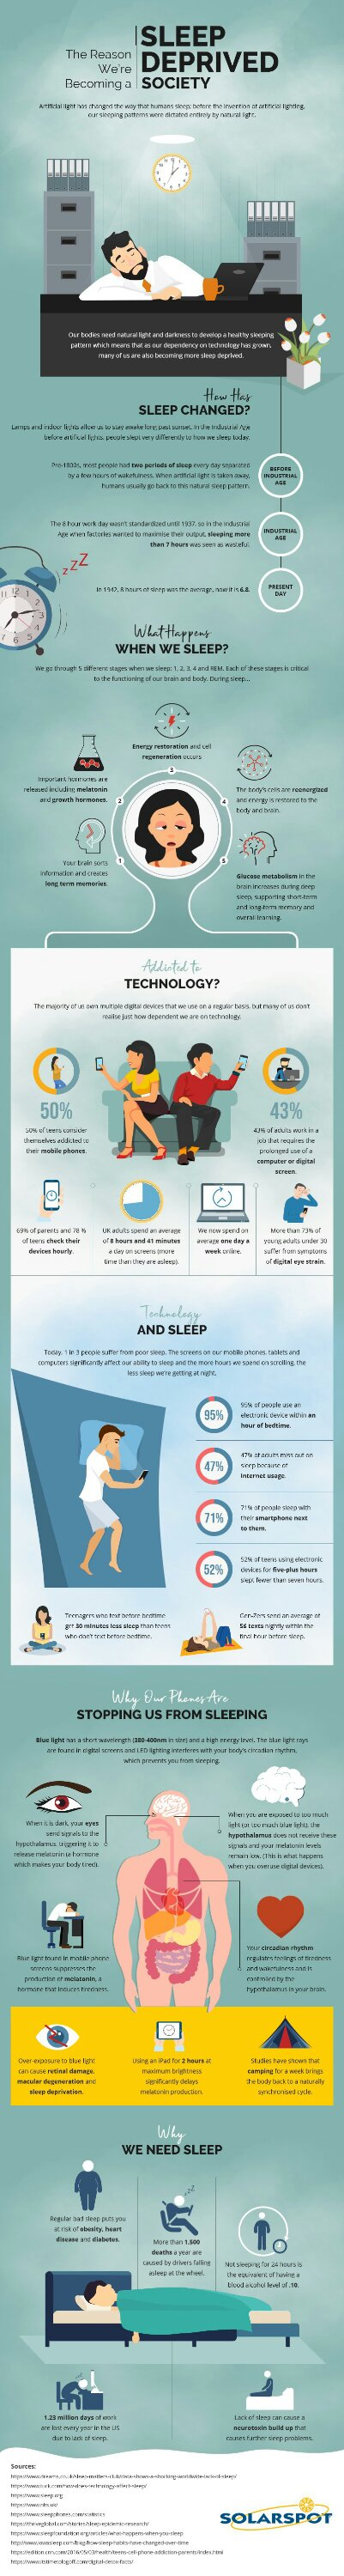 How Technology has Been Hindering with Your Sleep?